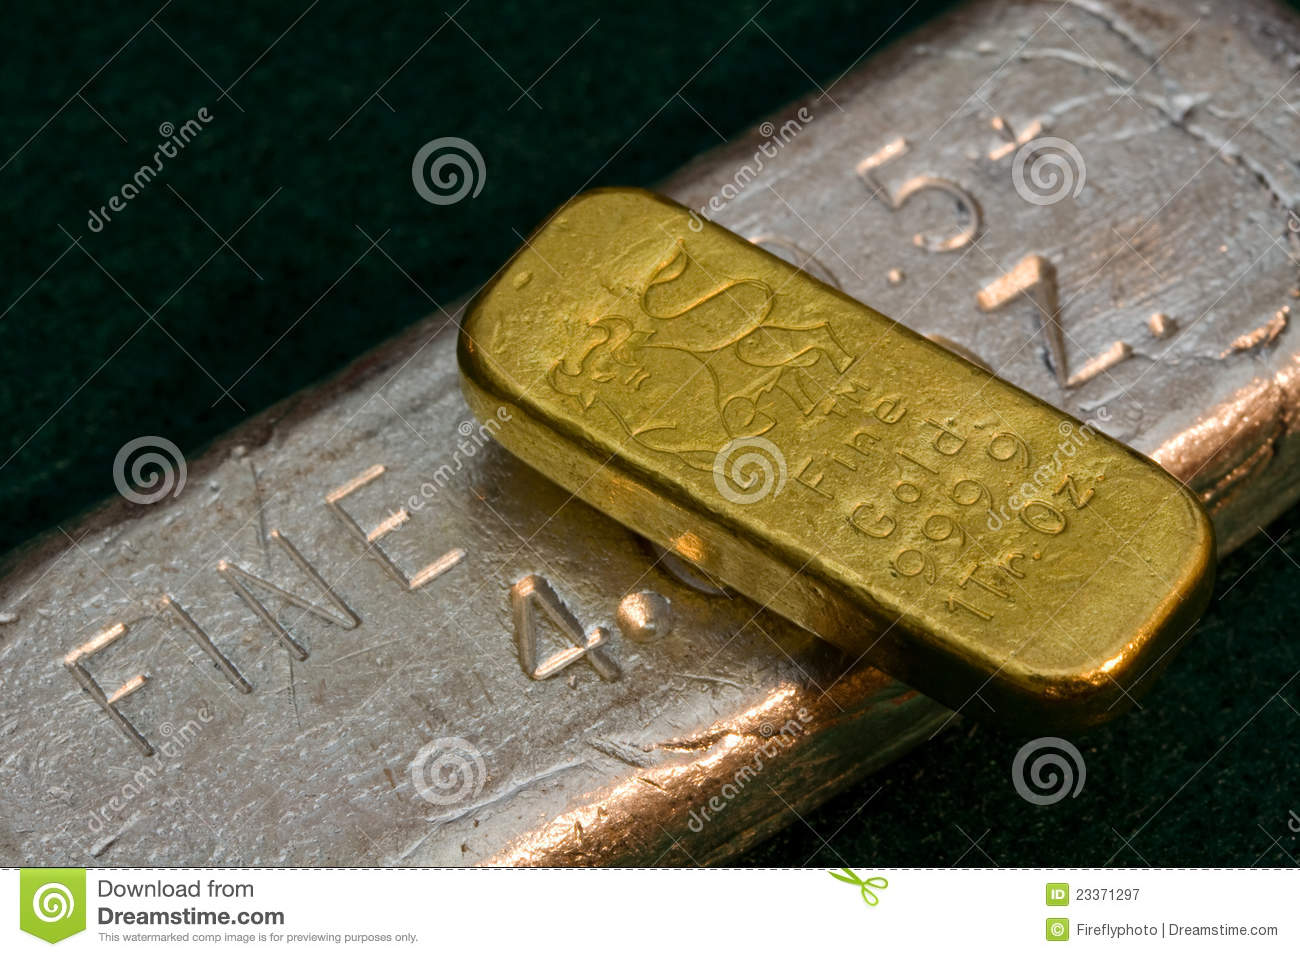 1 Ounce Gold Bullion Bar Ingot Silver Bar Below